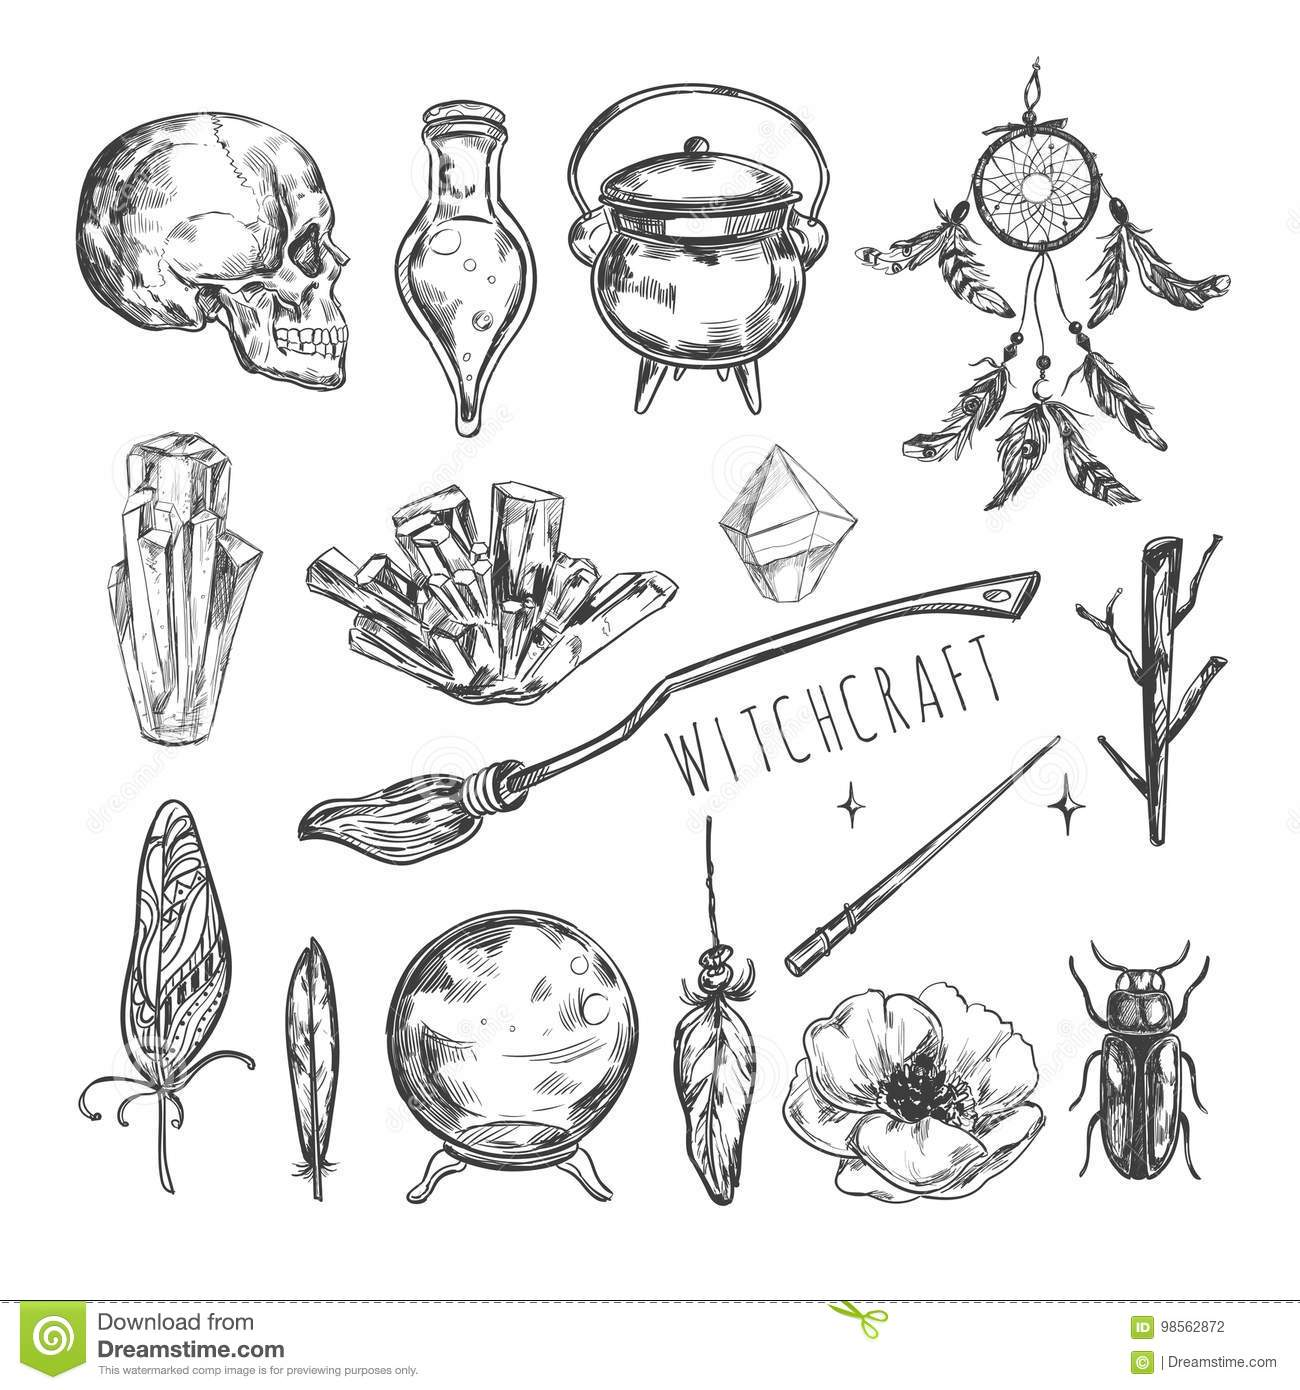 Witch craft symbols gallery symbol and sign ideas hand drawn magic set vector illustration wizardry witchcraft vector illustration wizardry witchcraft symbols isolated icons collection buycottarizona